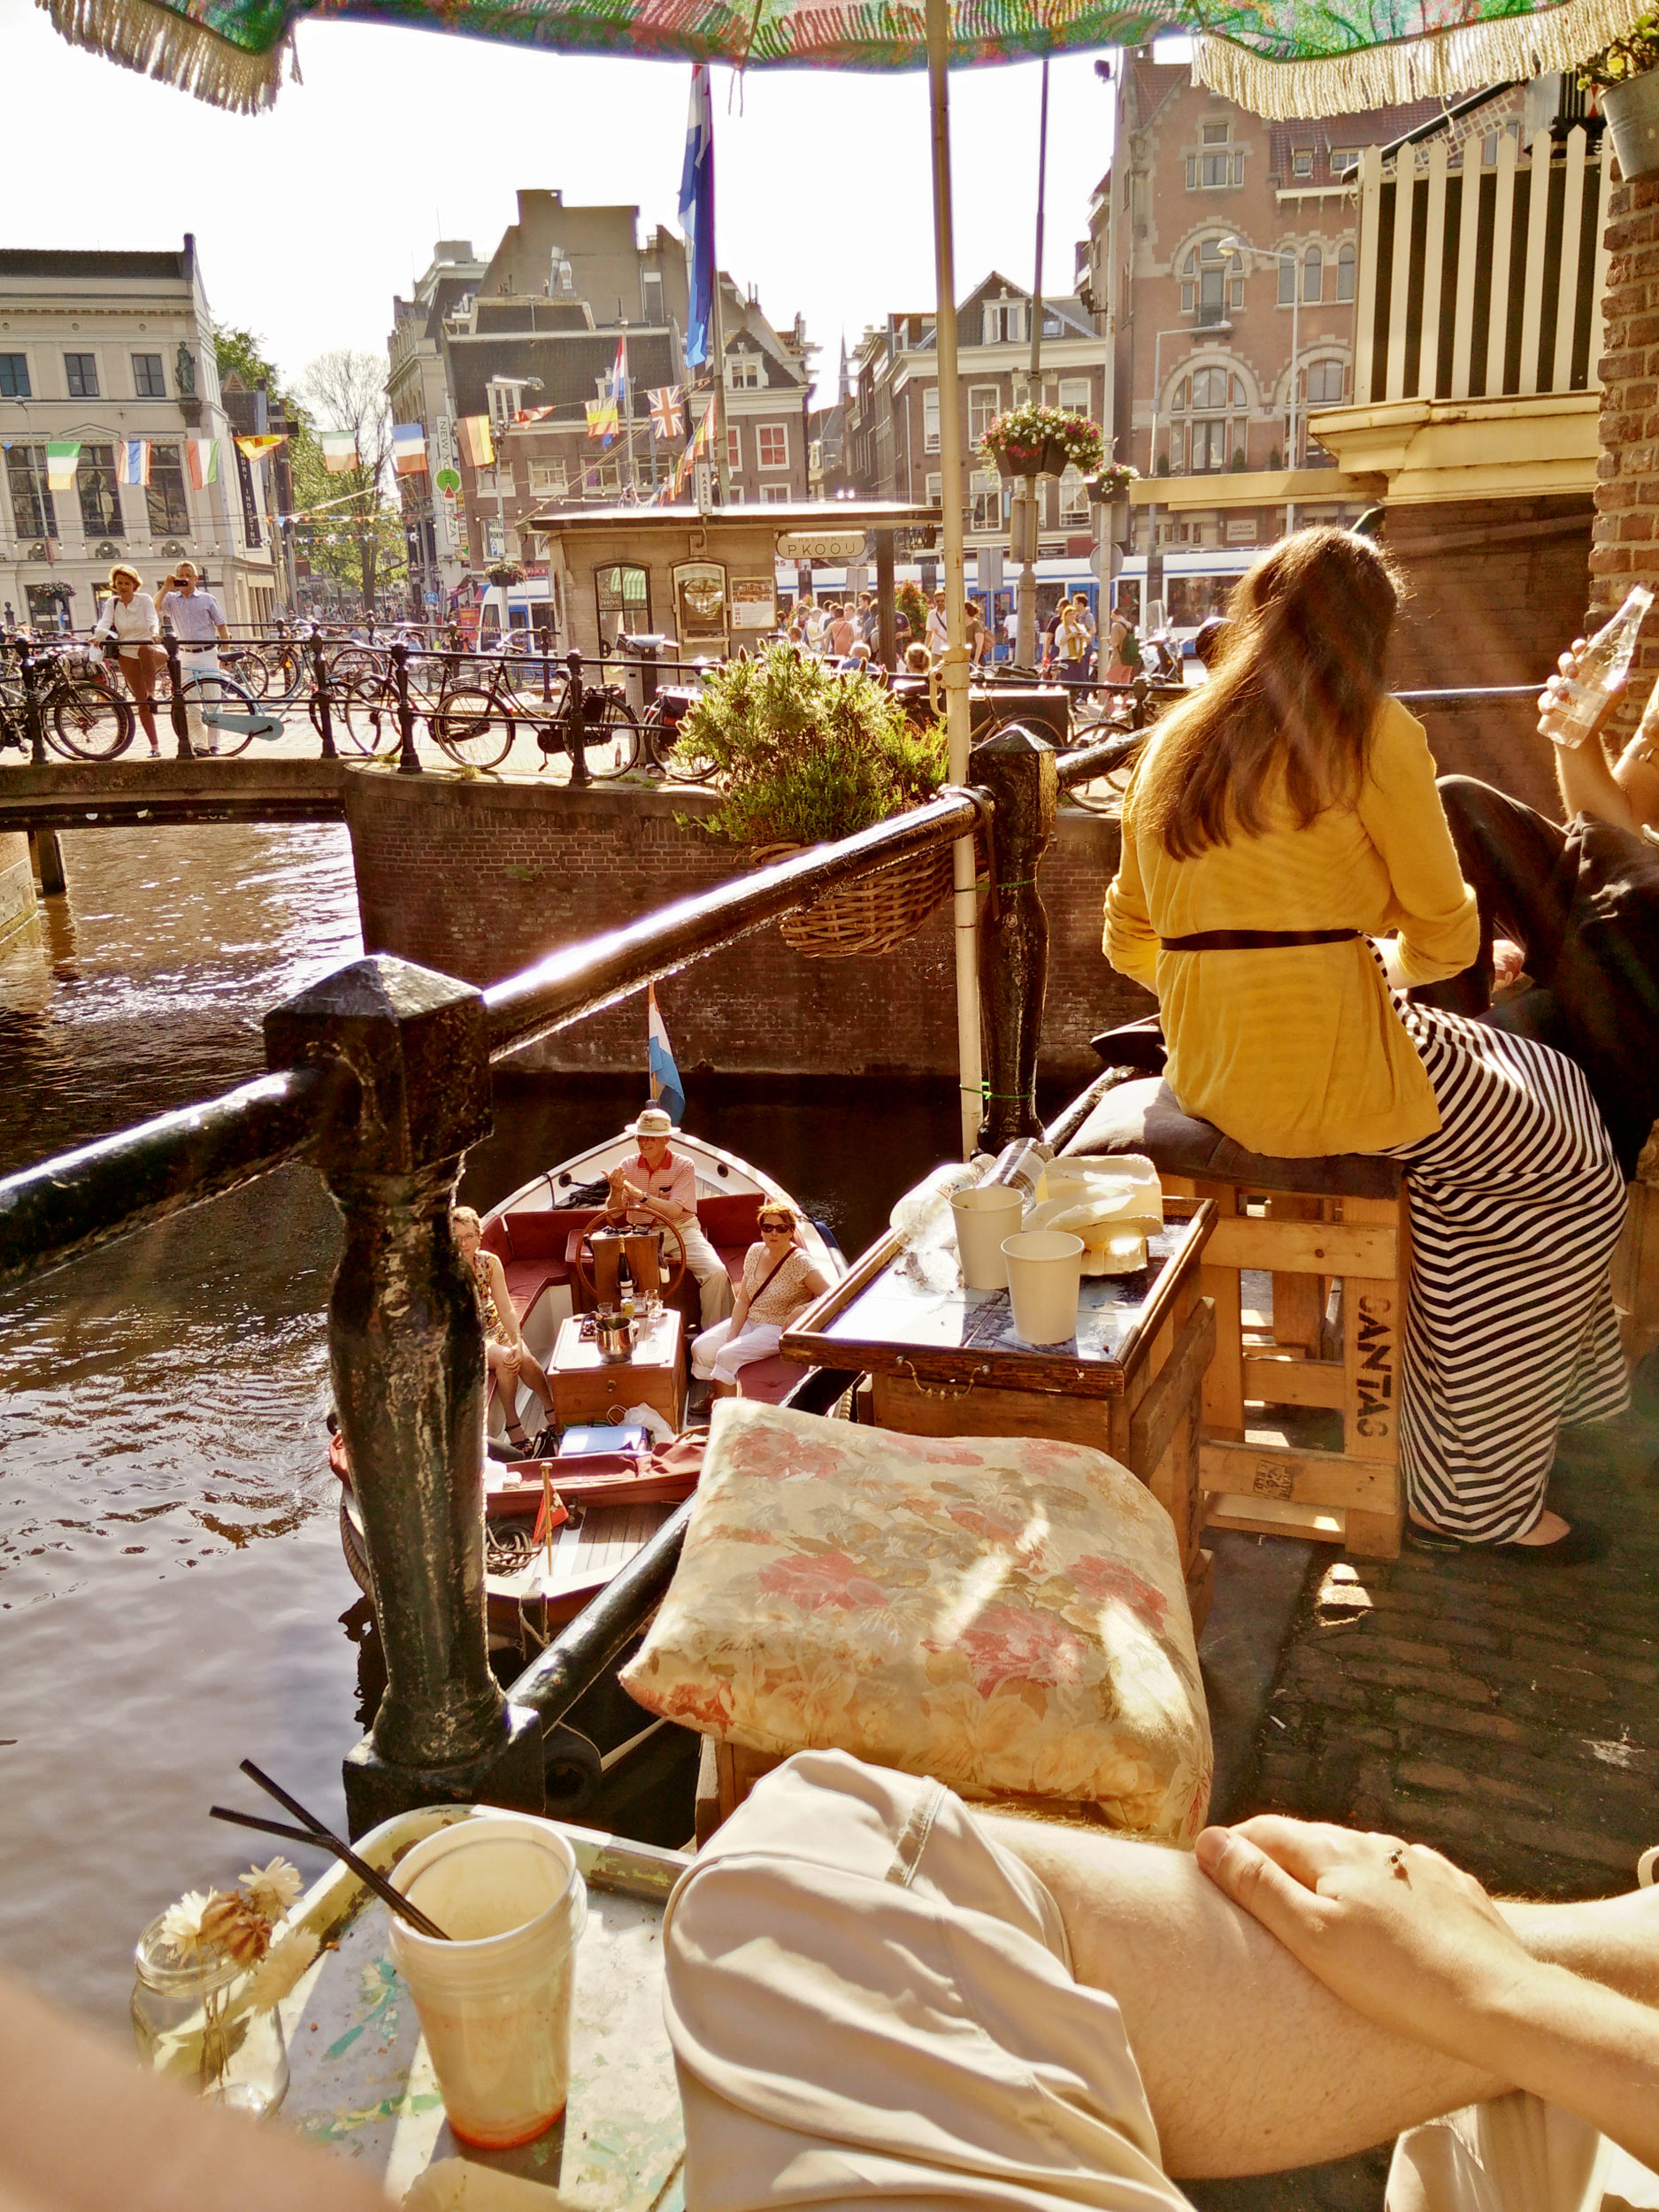 balcony of bakery and café De Laatste Kruimel over the canal Grimburgwal in Amsterdam